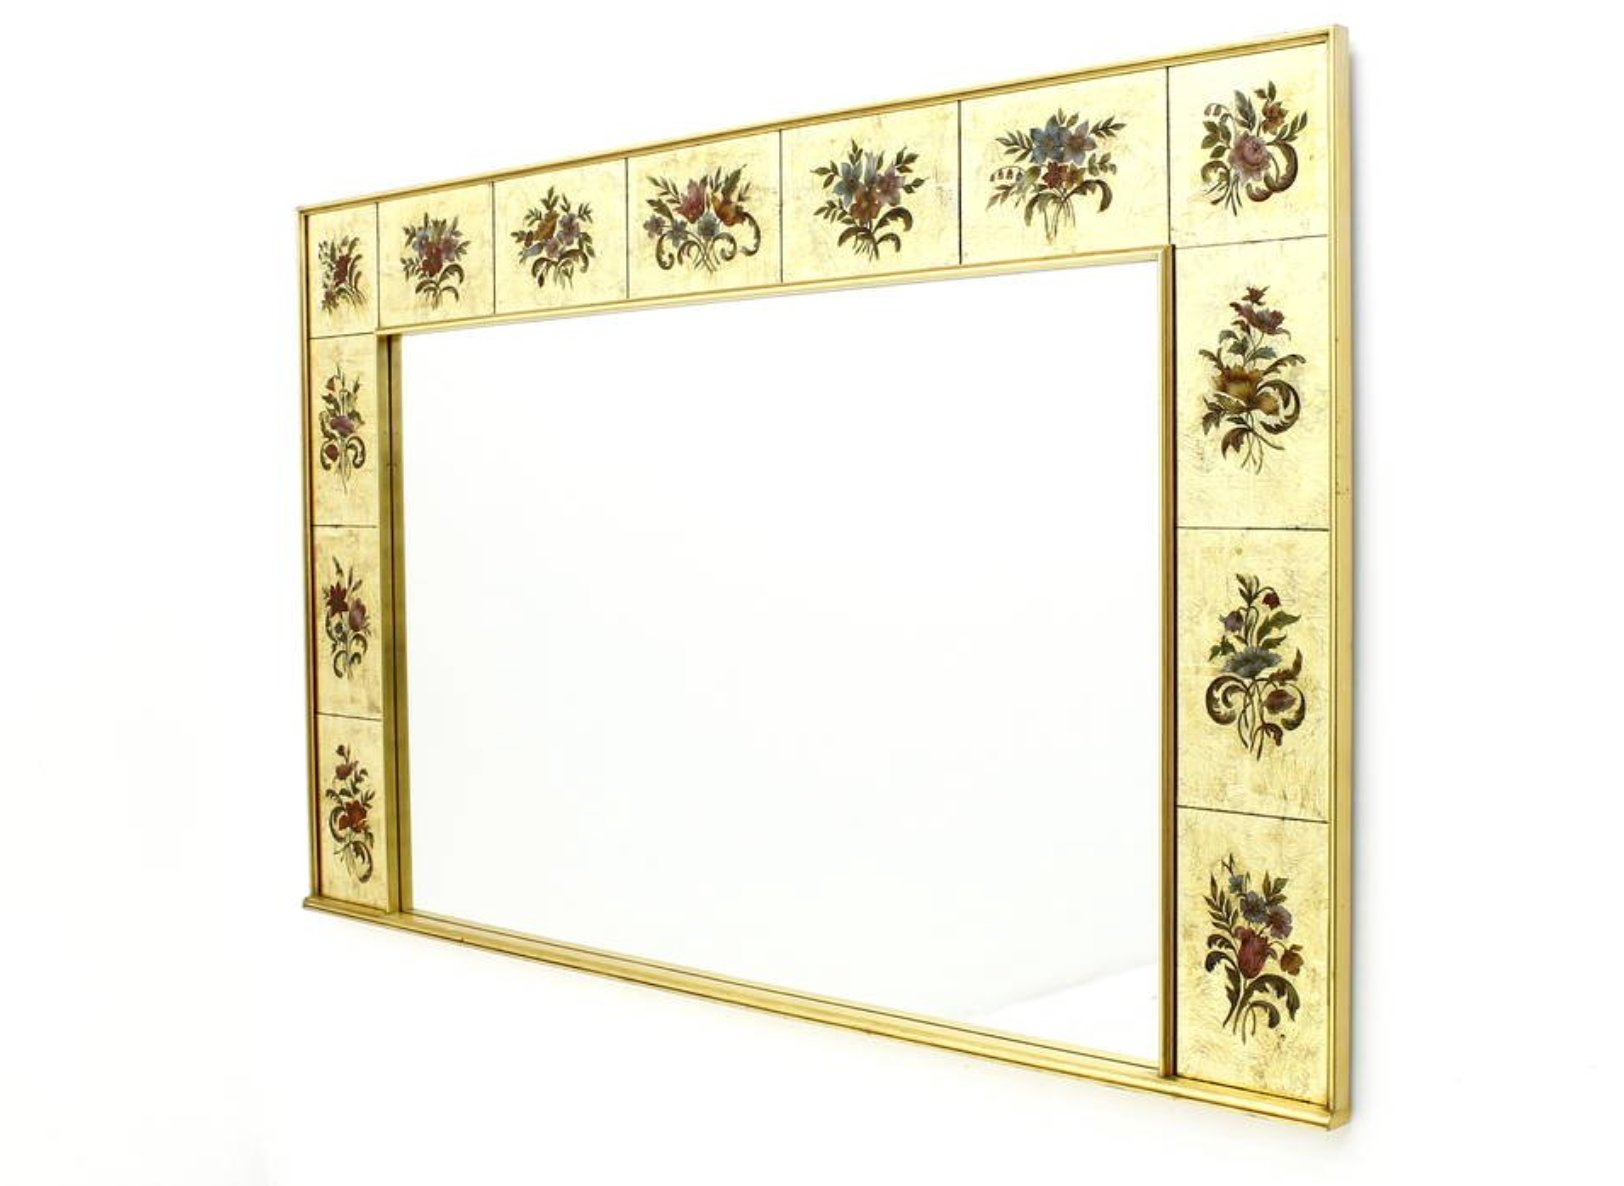 Large decorative wall mirror 1980s for sale at pamono for Decorative wall mirrors